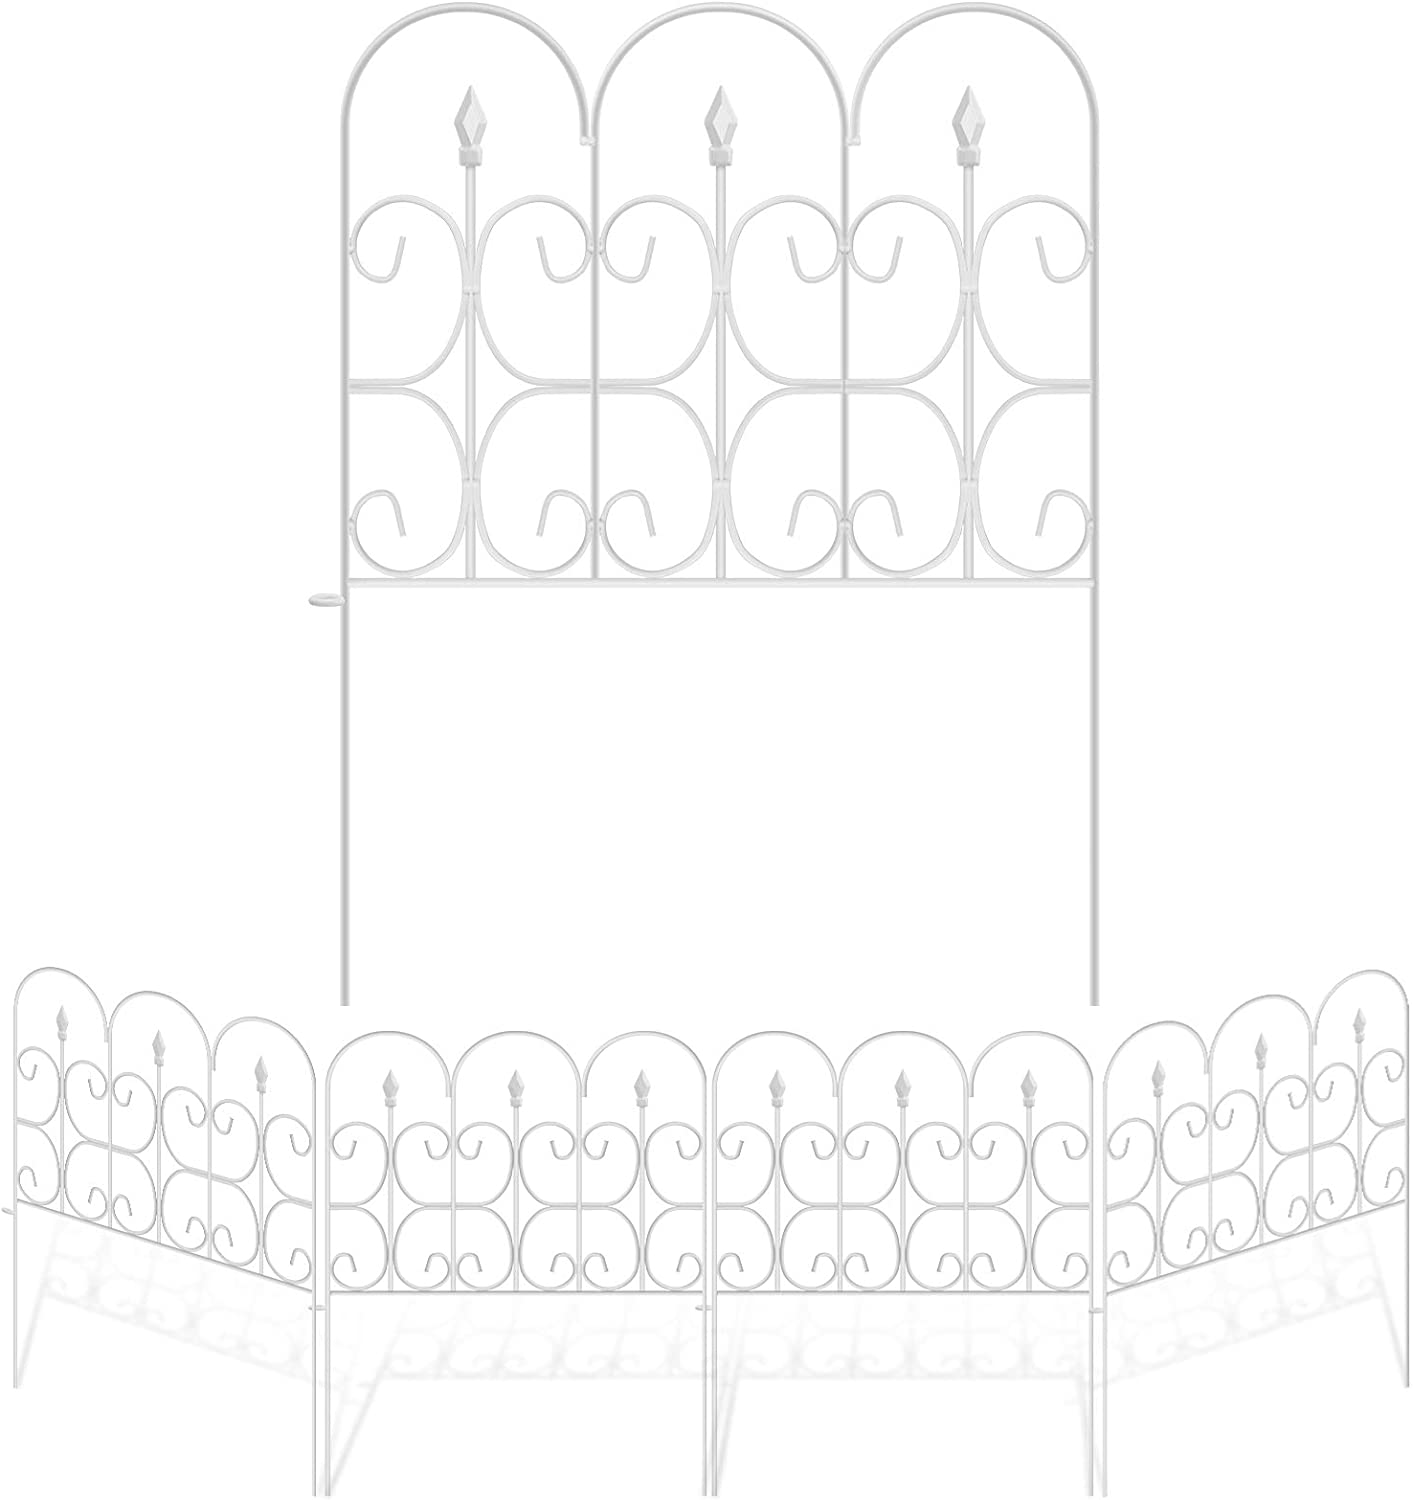 Amagabeli Decorative Garden Fence Outdoor 32in x 10ft White Coated Metal Rustproof Landscape Wrought Iron Wire Border Folding Patio Fences Flower Bed Fencing Barrier Section Panels Decor Picket Edging